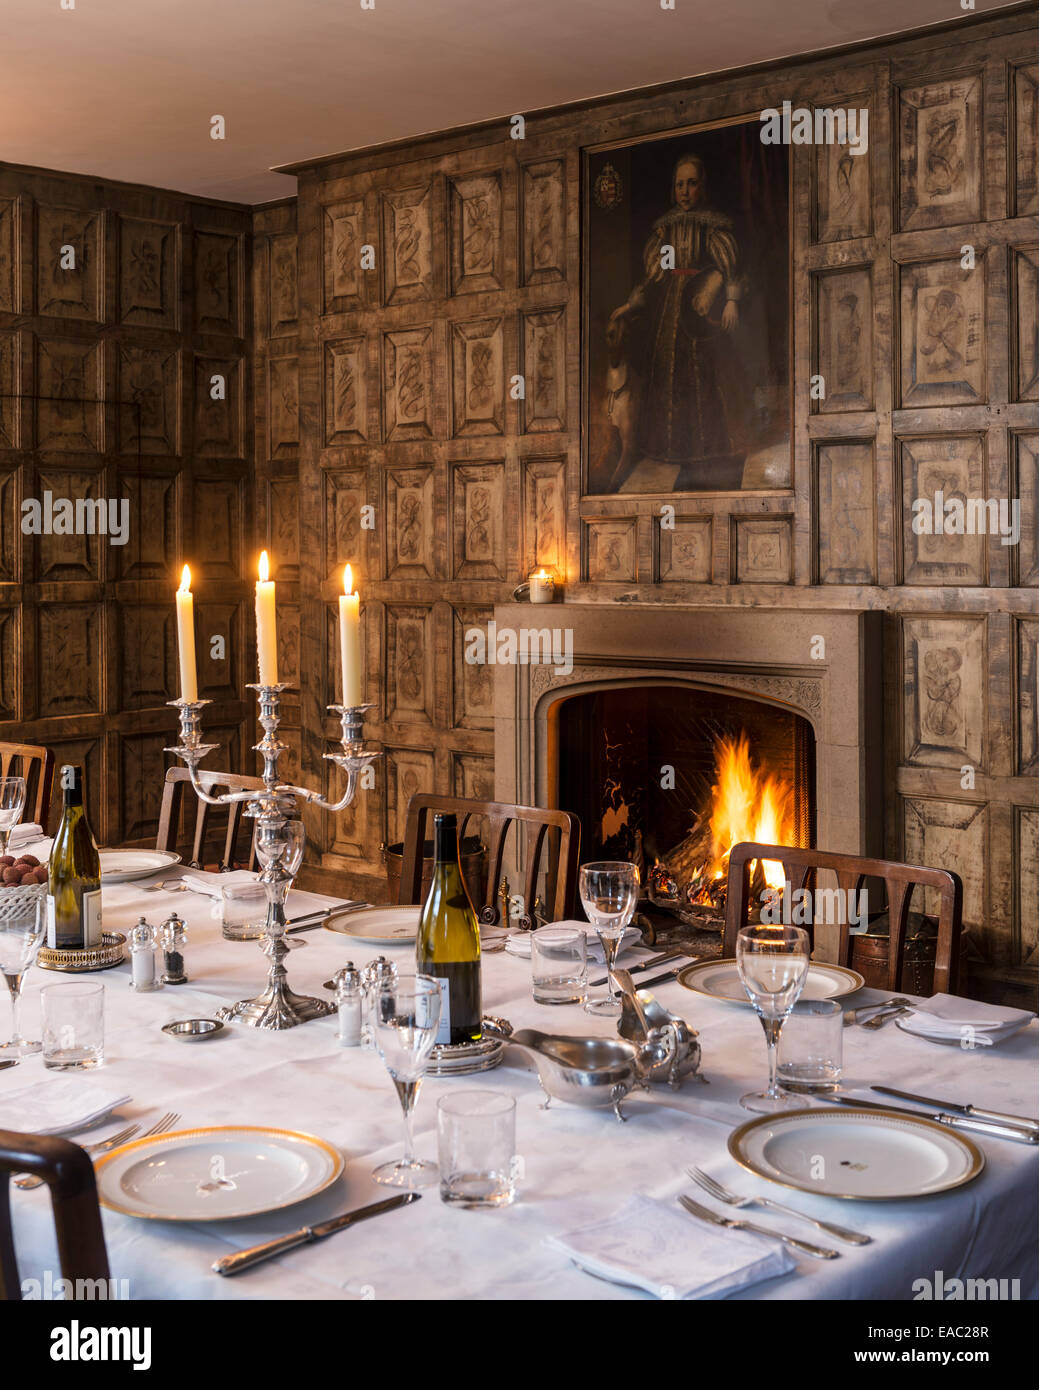 Original Jacobean Wall Panels In Dining Room With Open Fireplace